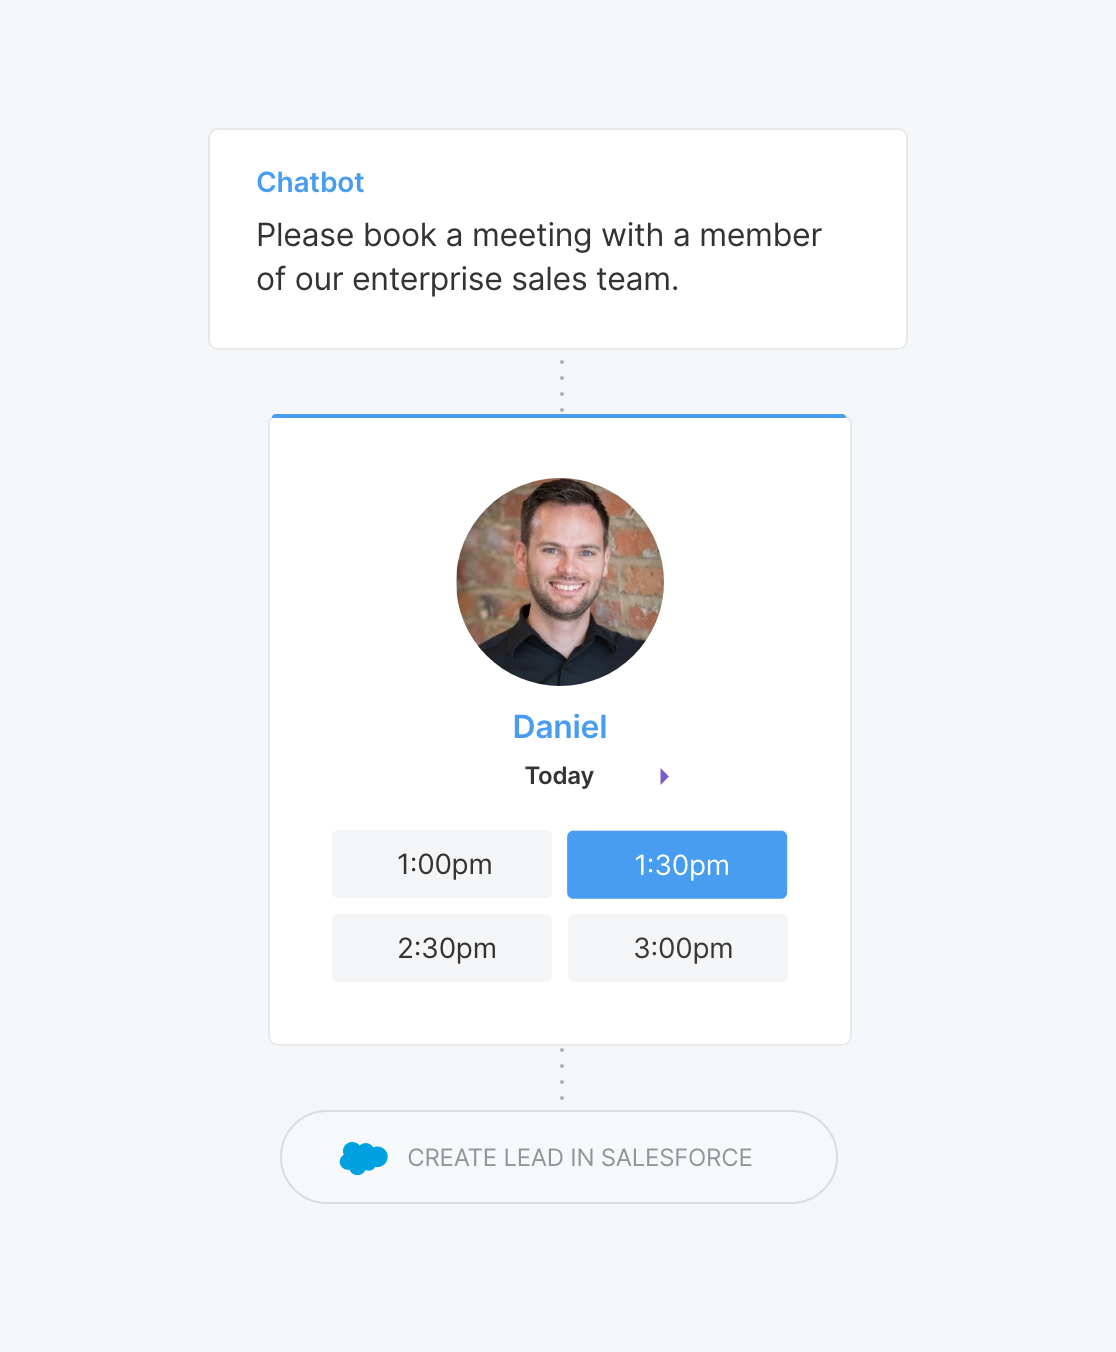 Brandfolder uses the Qualified meeting booker to book more meetings